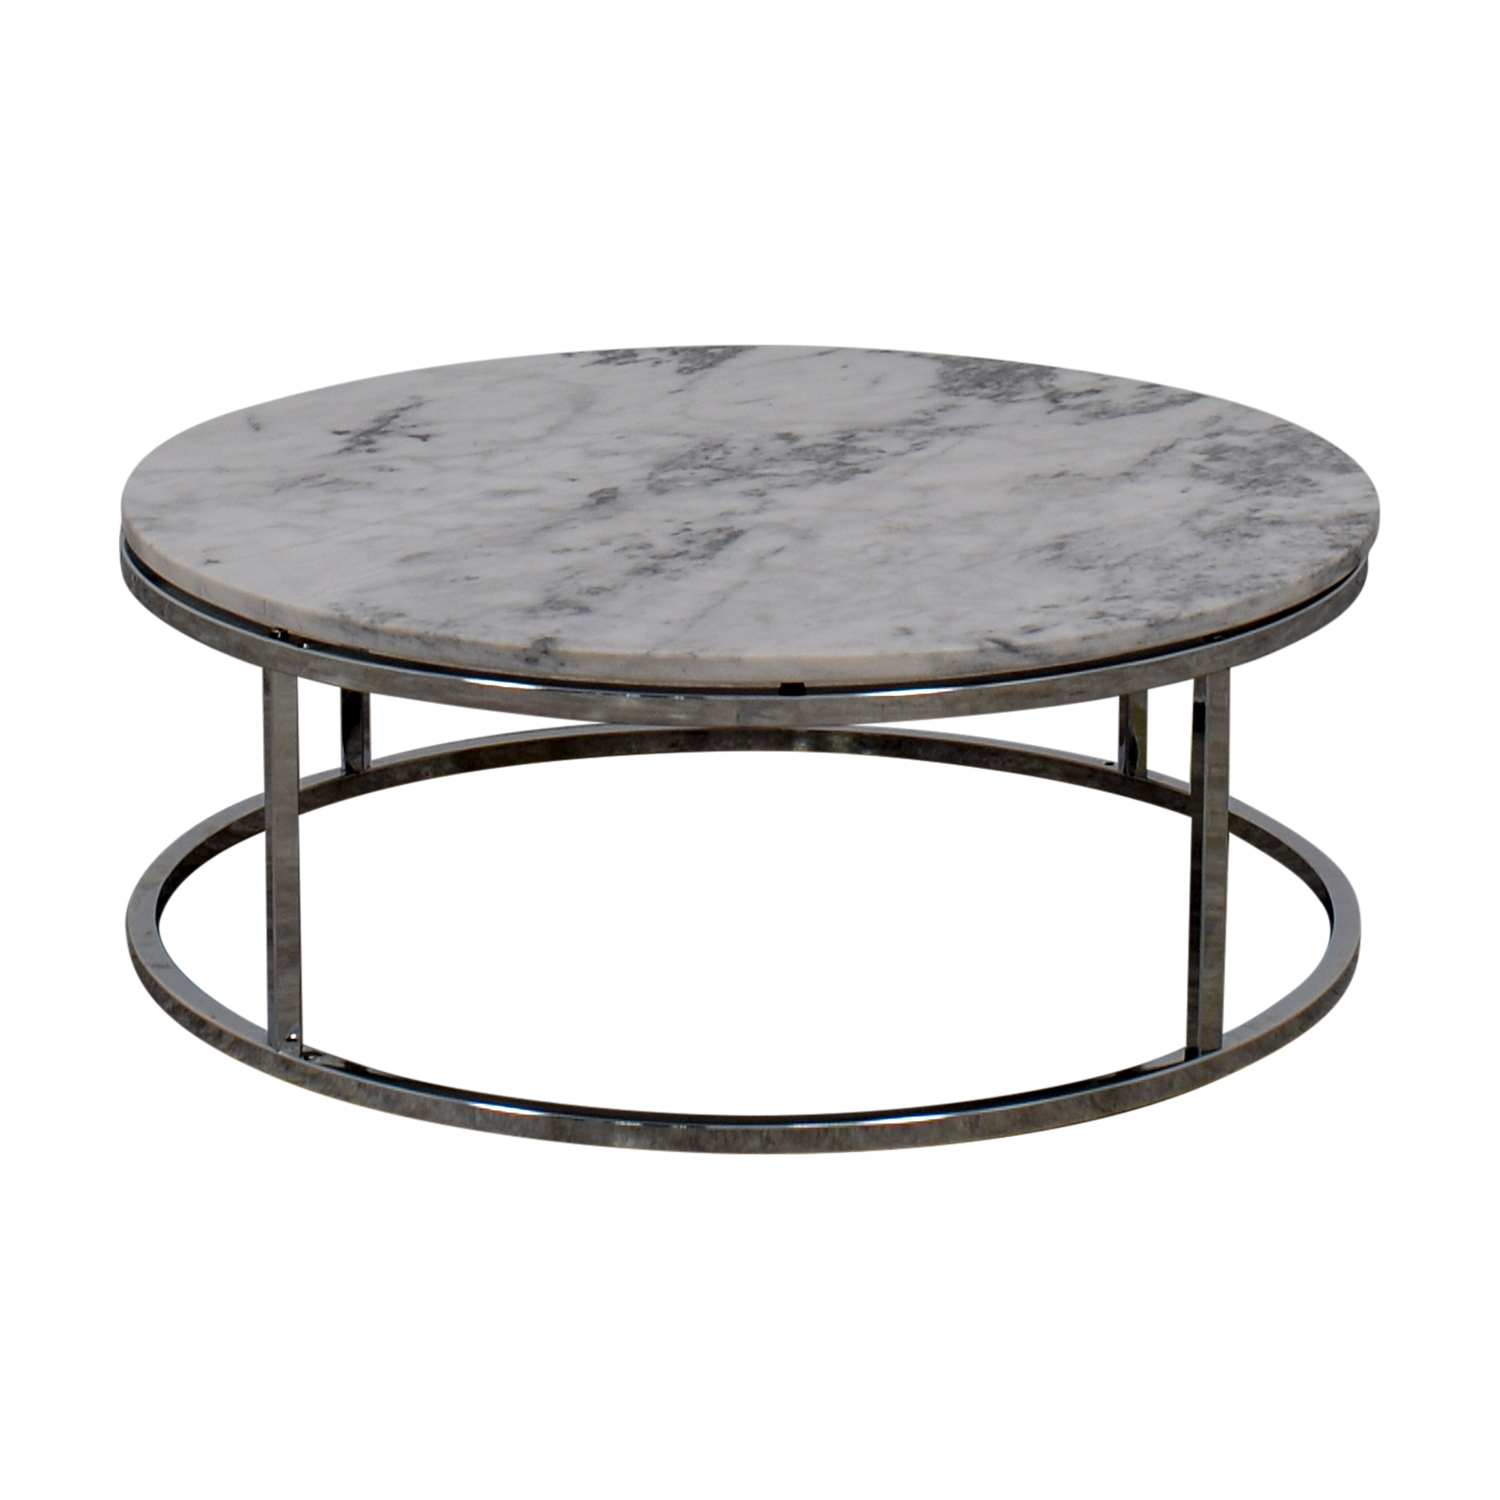 CB2 CB2 Round White Marble Coffee Table Off White / Grey / Chrome